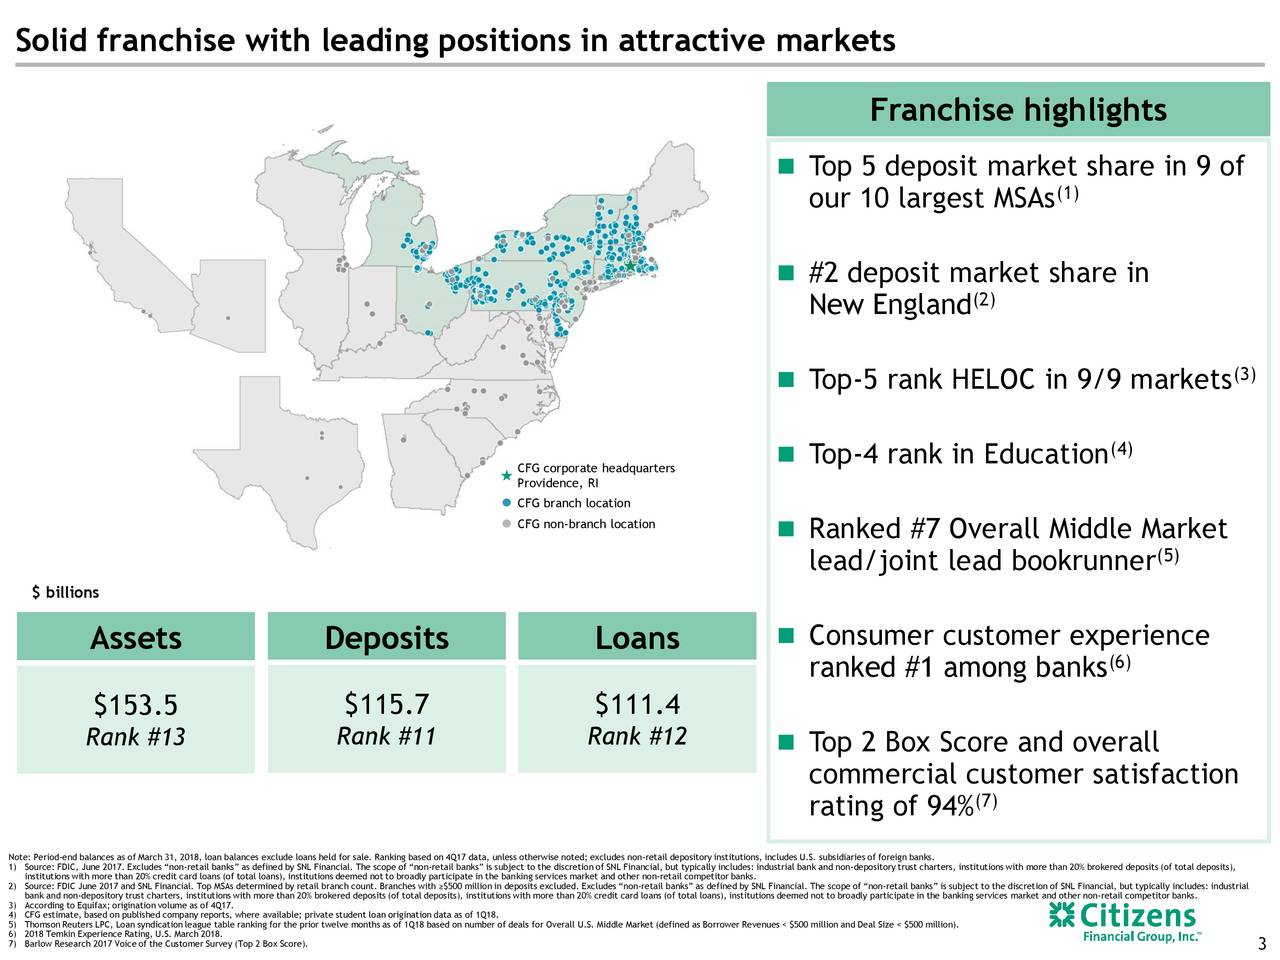 Franchise highlights  Top 5 deposit market share in 9 of our 10 largest MSAs (1)  #2 deposit market share in New England (2) (3)  Top-5 rank HELOC in 9/9 markets  Top-4 rank in Education (4) Providence, RIheadquarters CFG branch location CFG non-branch location  Ranked #7 Overall Middle Market lead/joint lead bookrunner (5) $ billions Assets Deposits Loans  Consumer customer experience ranked #1 among banks (6) $153.5 $115.7 $111.4 Rank #13 Rank #11 Rank #12  Top 2 Box Score and overall commercial customer satisfaction rating of 94% (7) Note: Period-end balances as of March 31, 2018, loan balances exclude loans held for sale. Ranking based on 4Q17 data, unless otherwise noted; excludes non-retail depository institutions, includes U.S. subsidiaries of foreign banks. 1)institutions with more than 20% credit card loans (of total loans), institutions deemed not to broadly participate in the banking services market and other non-retail competitor banks.: industrial bank and non-depository trust charters, institutions with more than 20% brokered deposits (of total deposits), 2)bank and non-depository trust charters, institutions with more than 20% brokered deposits (of total deposits), institutions with more than 20% credit card loans (of total loans), institutions deemed not to broadly participate in the banking services market and other non-retail competitor banks.: industrial 5) Thomson Reuters LPC, Loan syndication league table ranking for the prior twelve months as of 1Q18 based on number of deals for Overall U.S. Middle Market (defined as Borrower Revenues < $500 million and Deal Size < $500 million). 7) Barlow Research 2017 Voice of the Customer Survey (Top 2 Box Score).